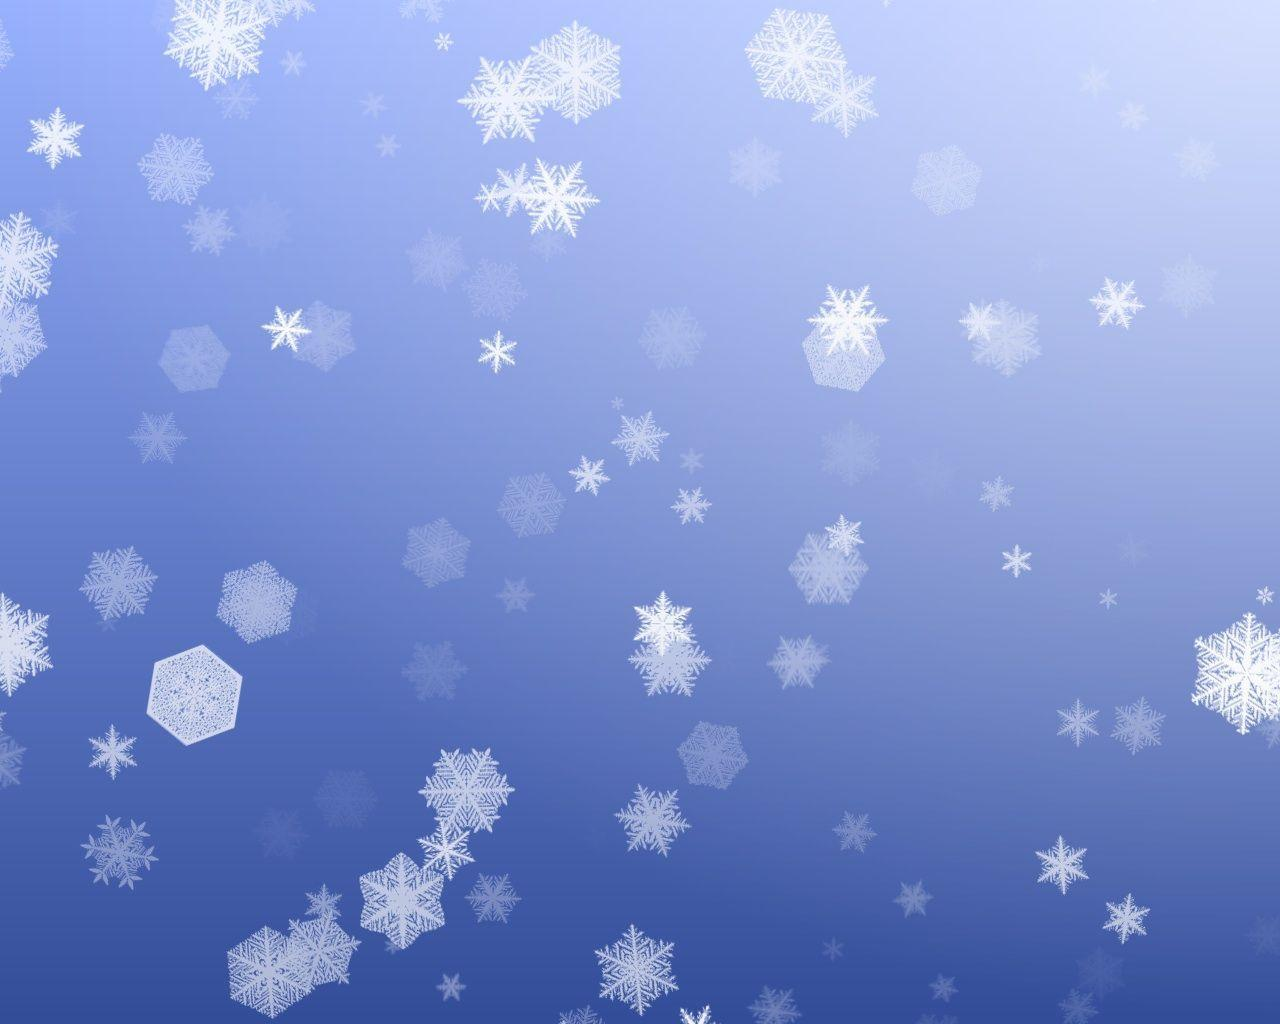 Wallpapers For > Snow Falling Backgrounds Gif